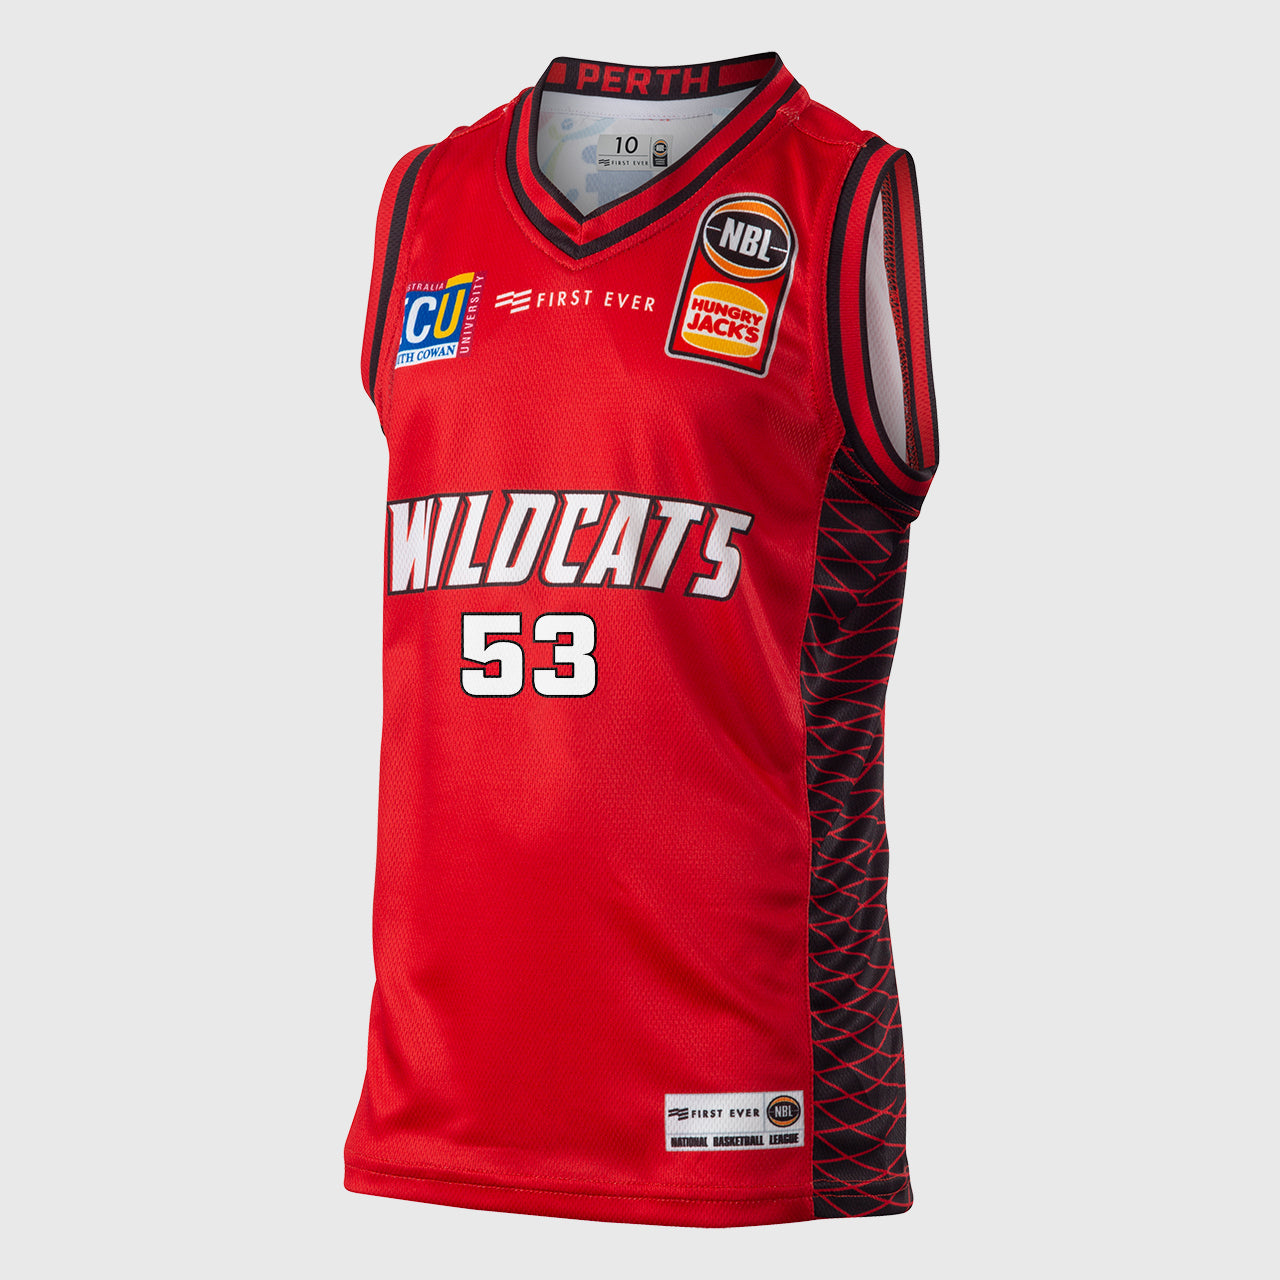 Perth Wildcats 18/19 Youth Authentic Jersey - Damian Martin